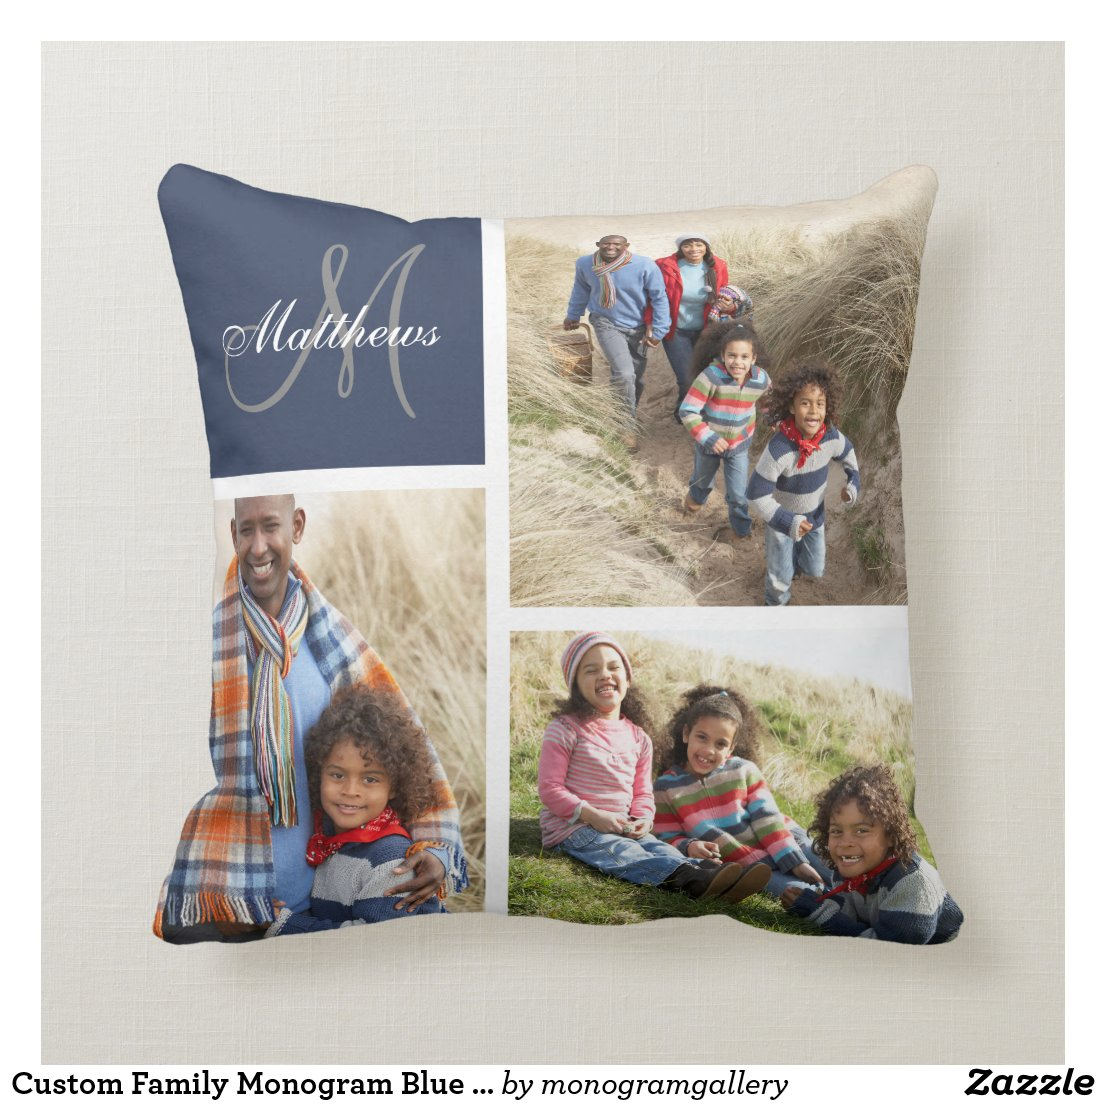 Custom Family Monogram Photo Collage Pillow